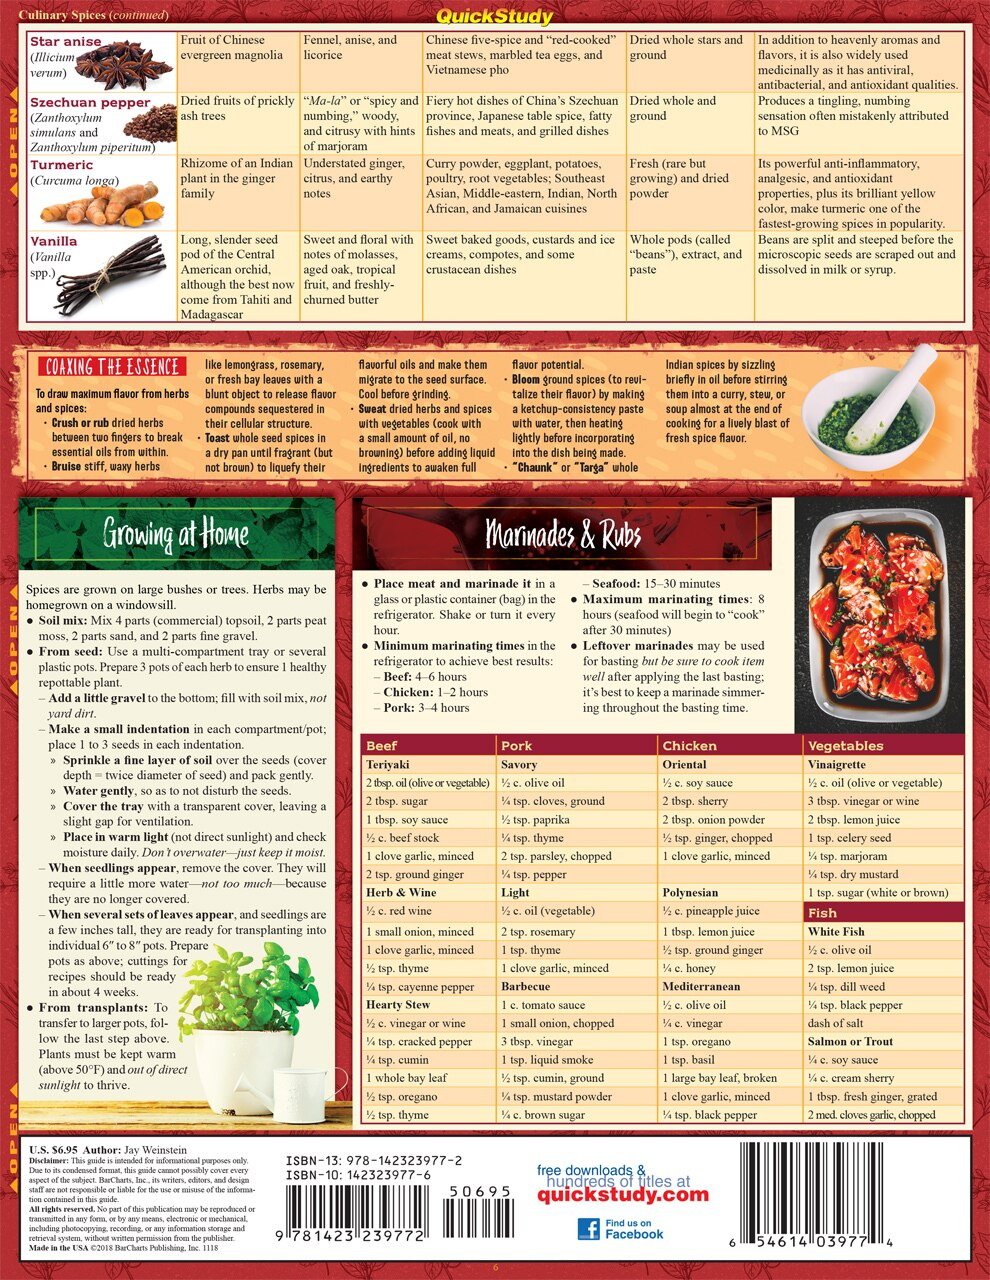 Quick Study QuickStudy Chef's Guide to Herbs & Spices Laminated Reference Guide BarCharts Publishing Culinary Reference Outline Back Image